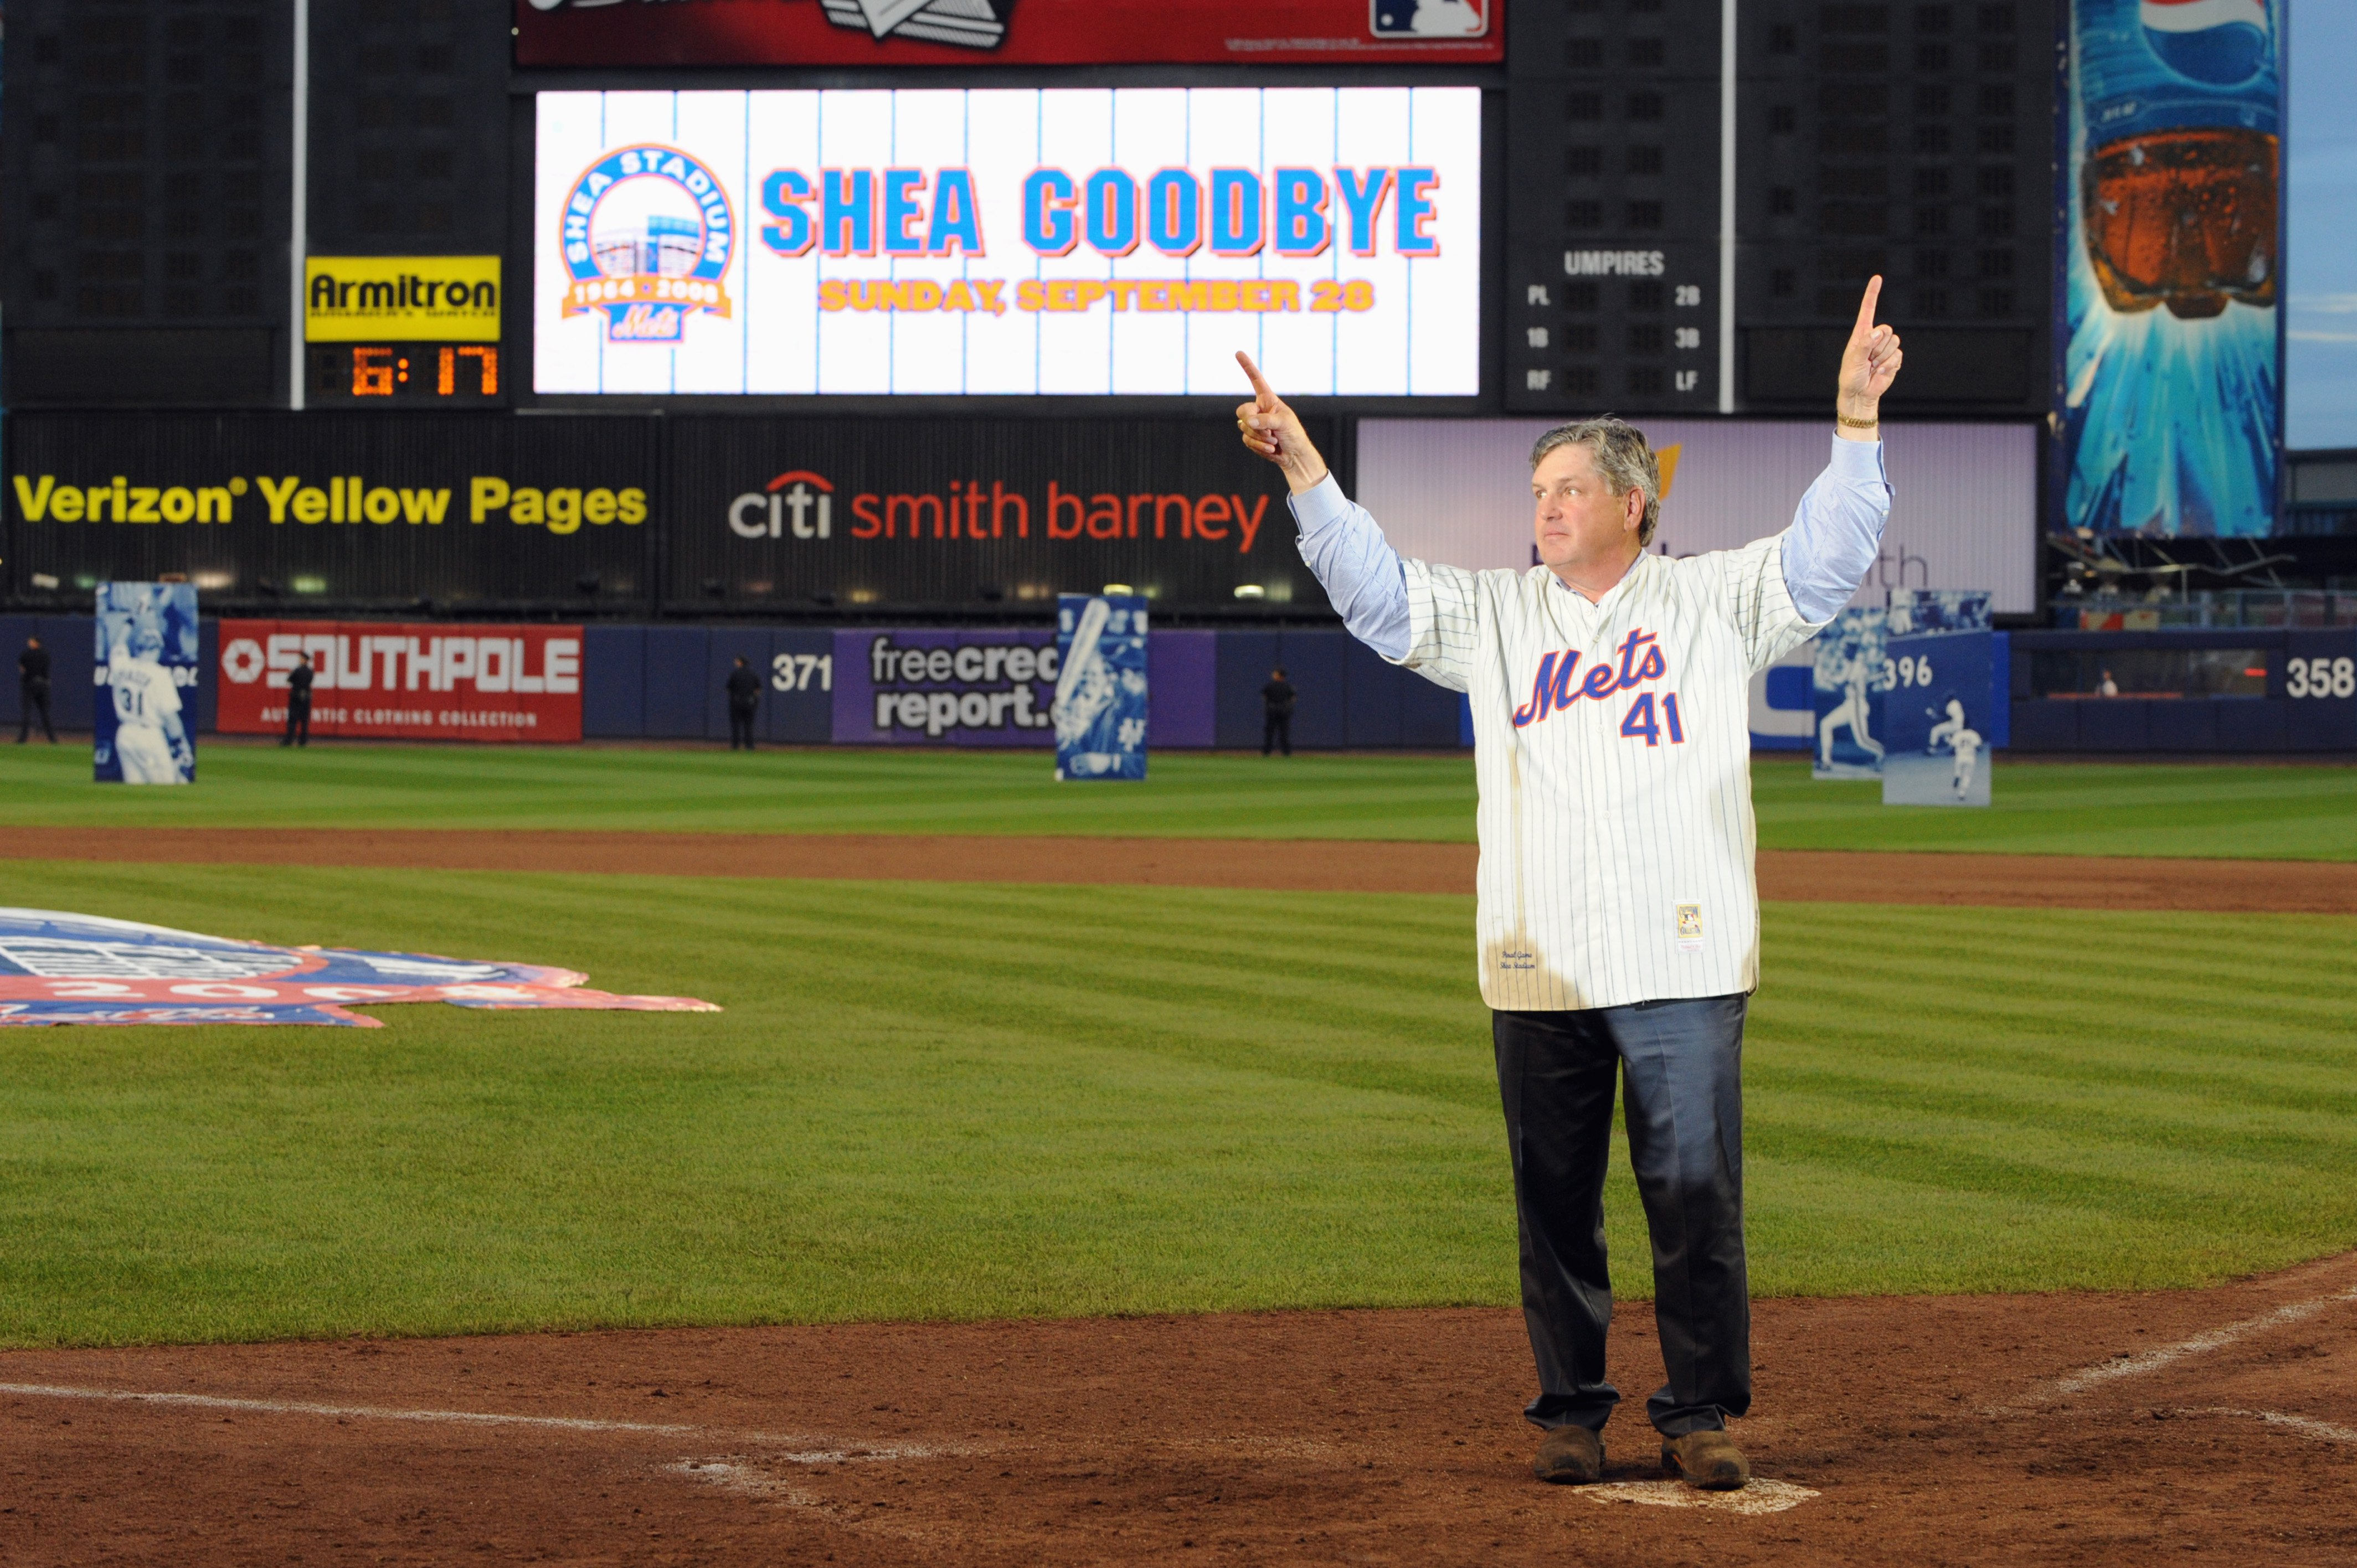 NEW YORK - SEPTEMBER 28:  Former New York Mets players Tom Seaver waves to the fans at home plate after the game against the Florida Marlins to commemorate the last regular season baseball game ever played in Shea Stadium on September 28, 2008 in the Flus